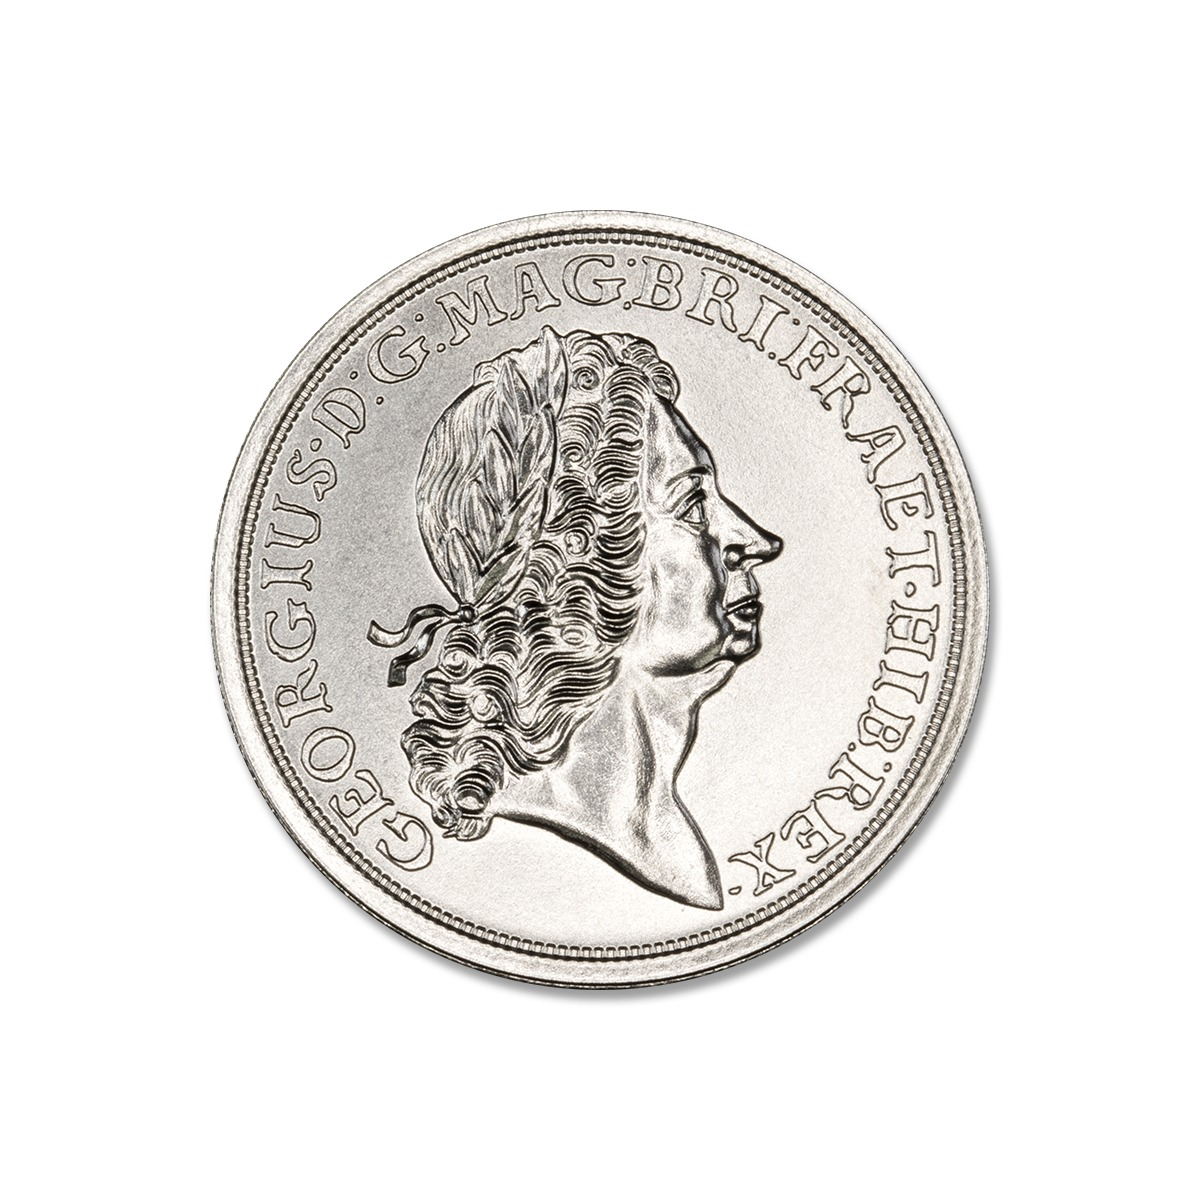 ROSA AMERICANA – 2 TROY OUNCE – 39MM